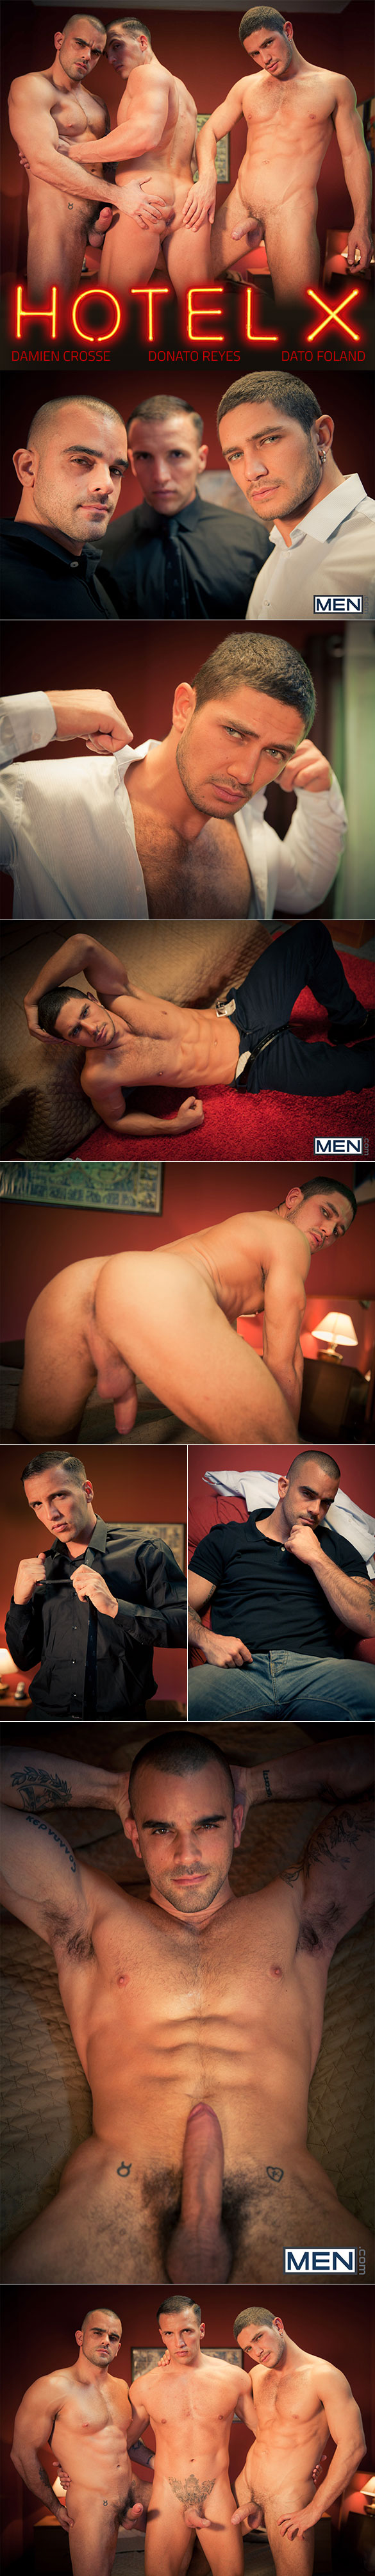 "Men.com: Dato Foland, Damien Crosse and Donato Reyes in ""Hotel X, Part 4"""